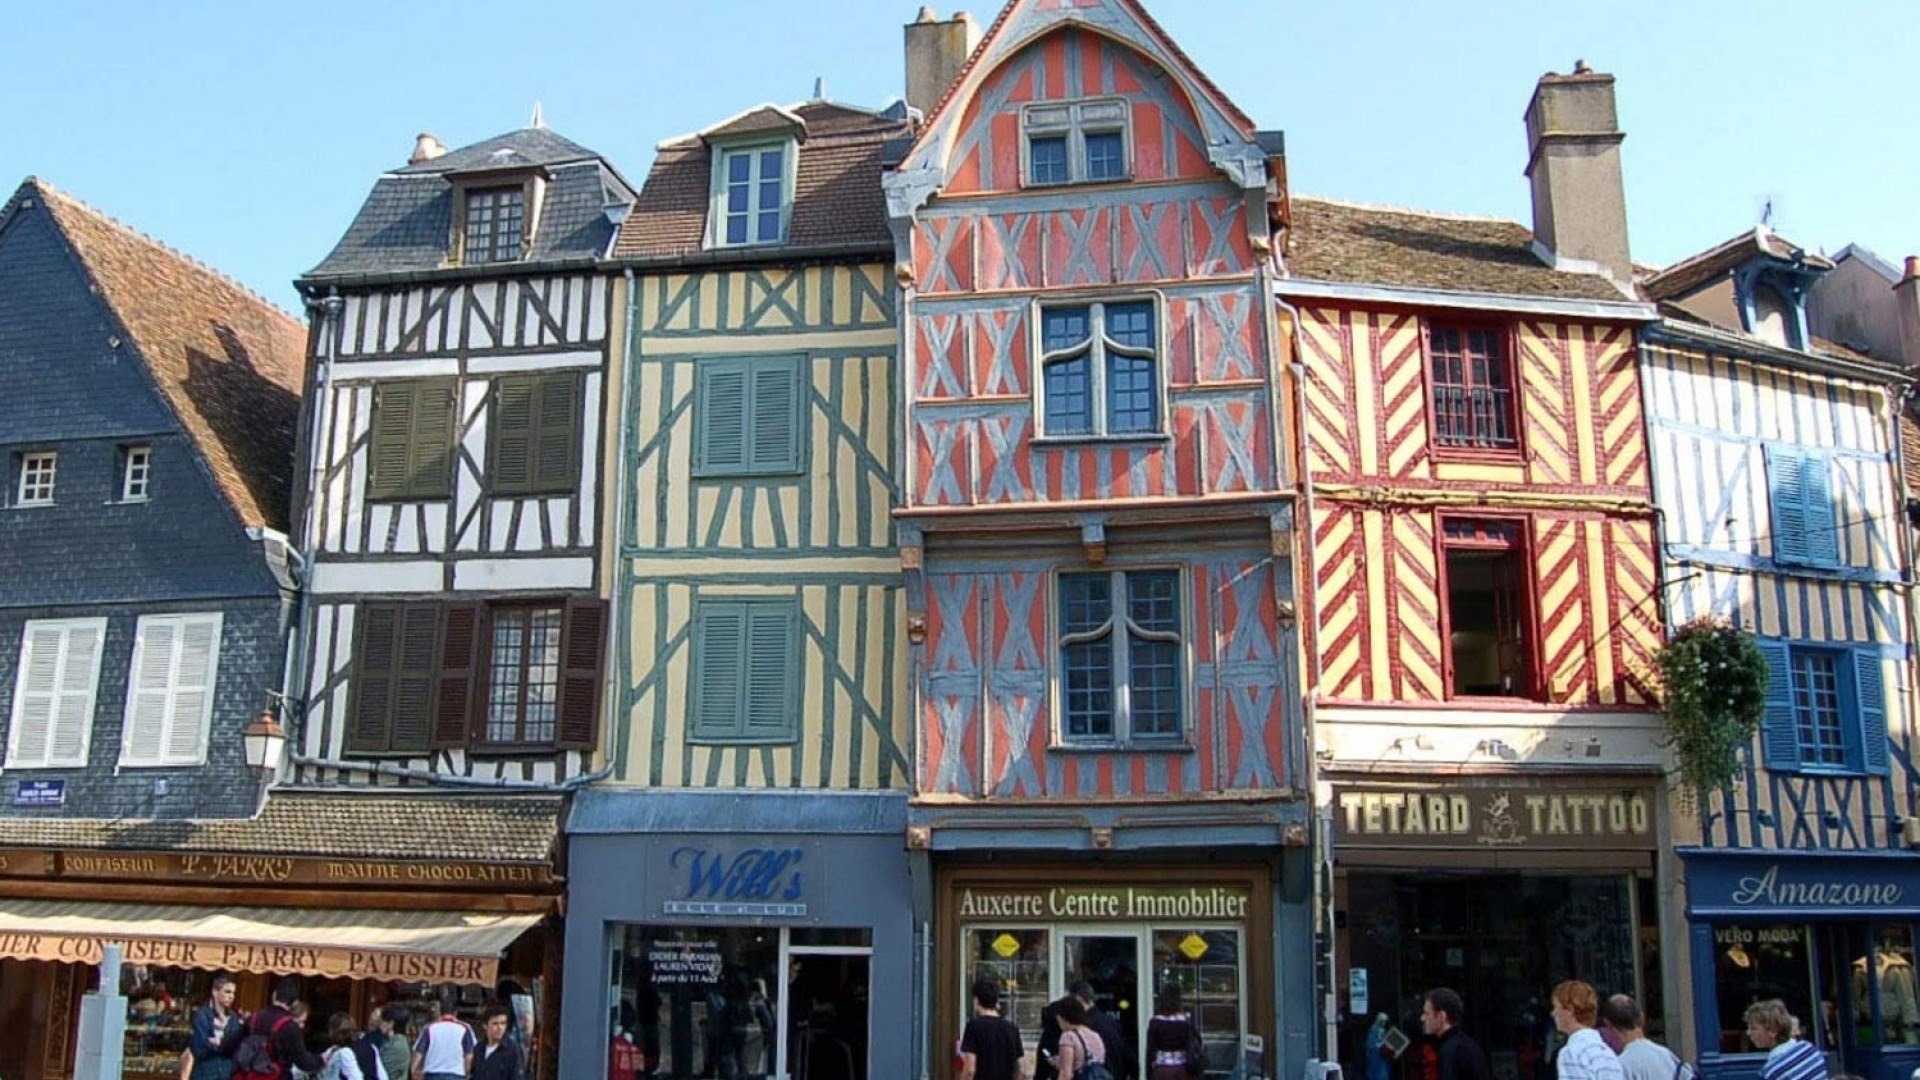 buildings in Auxerre, France